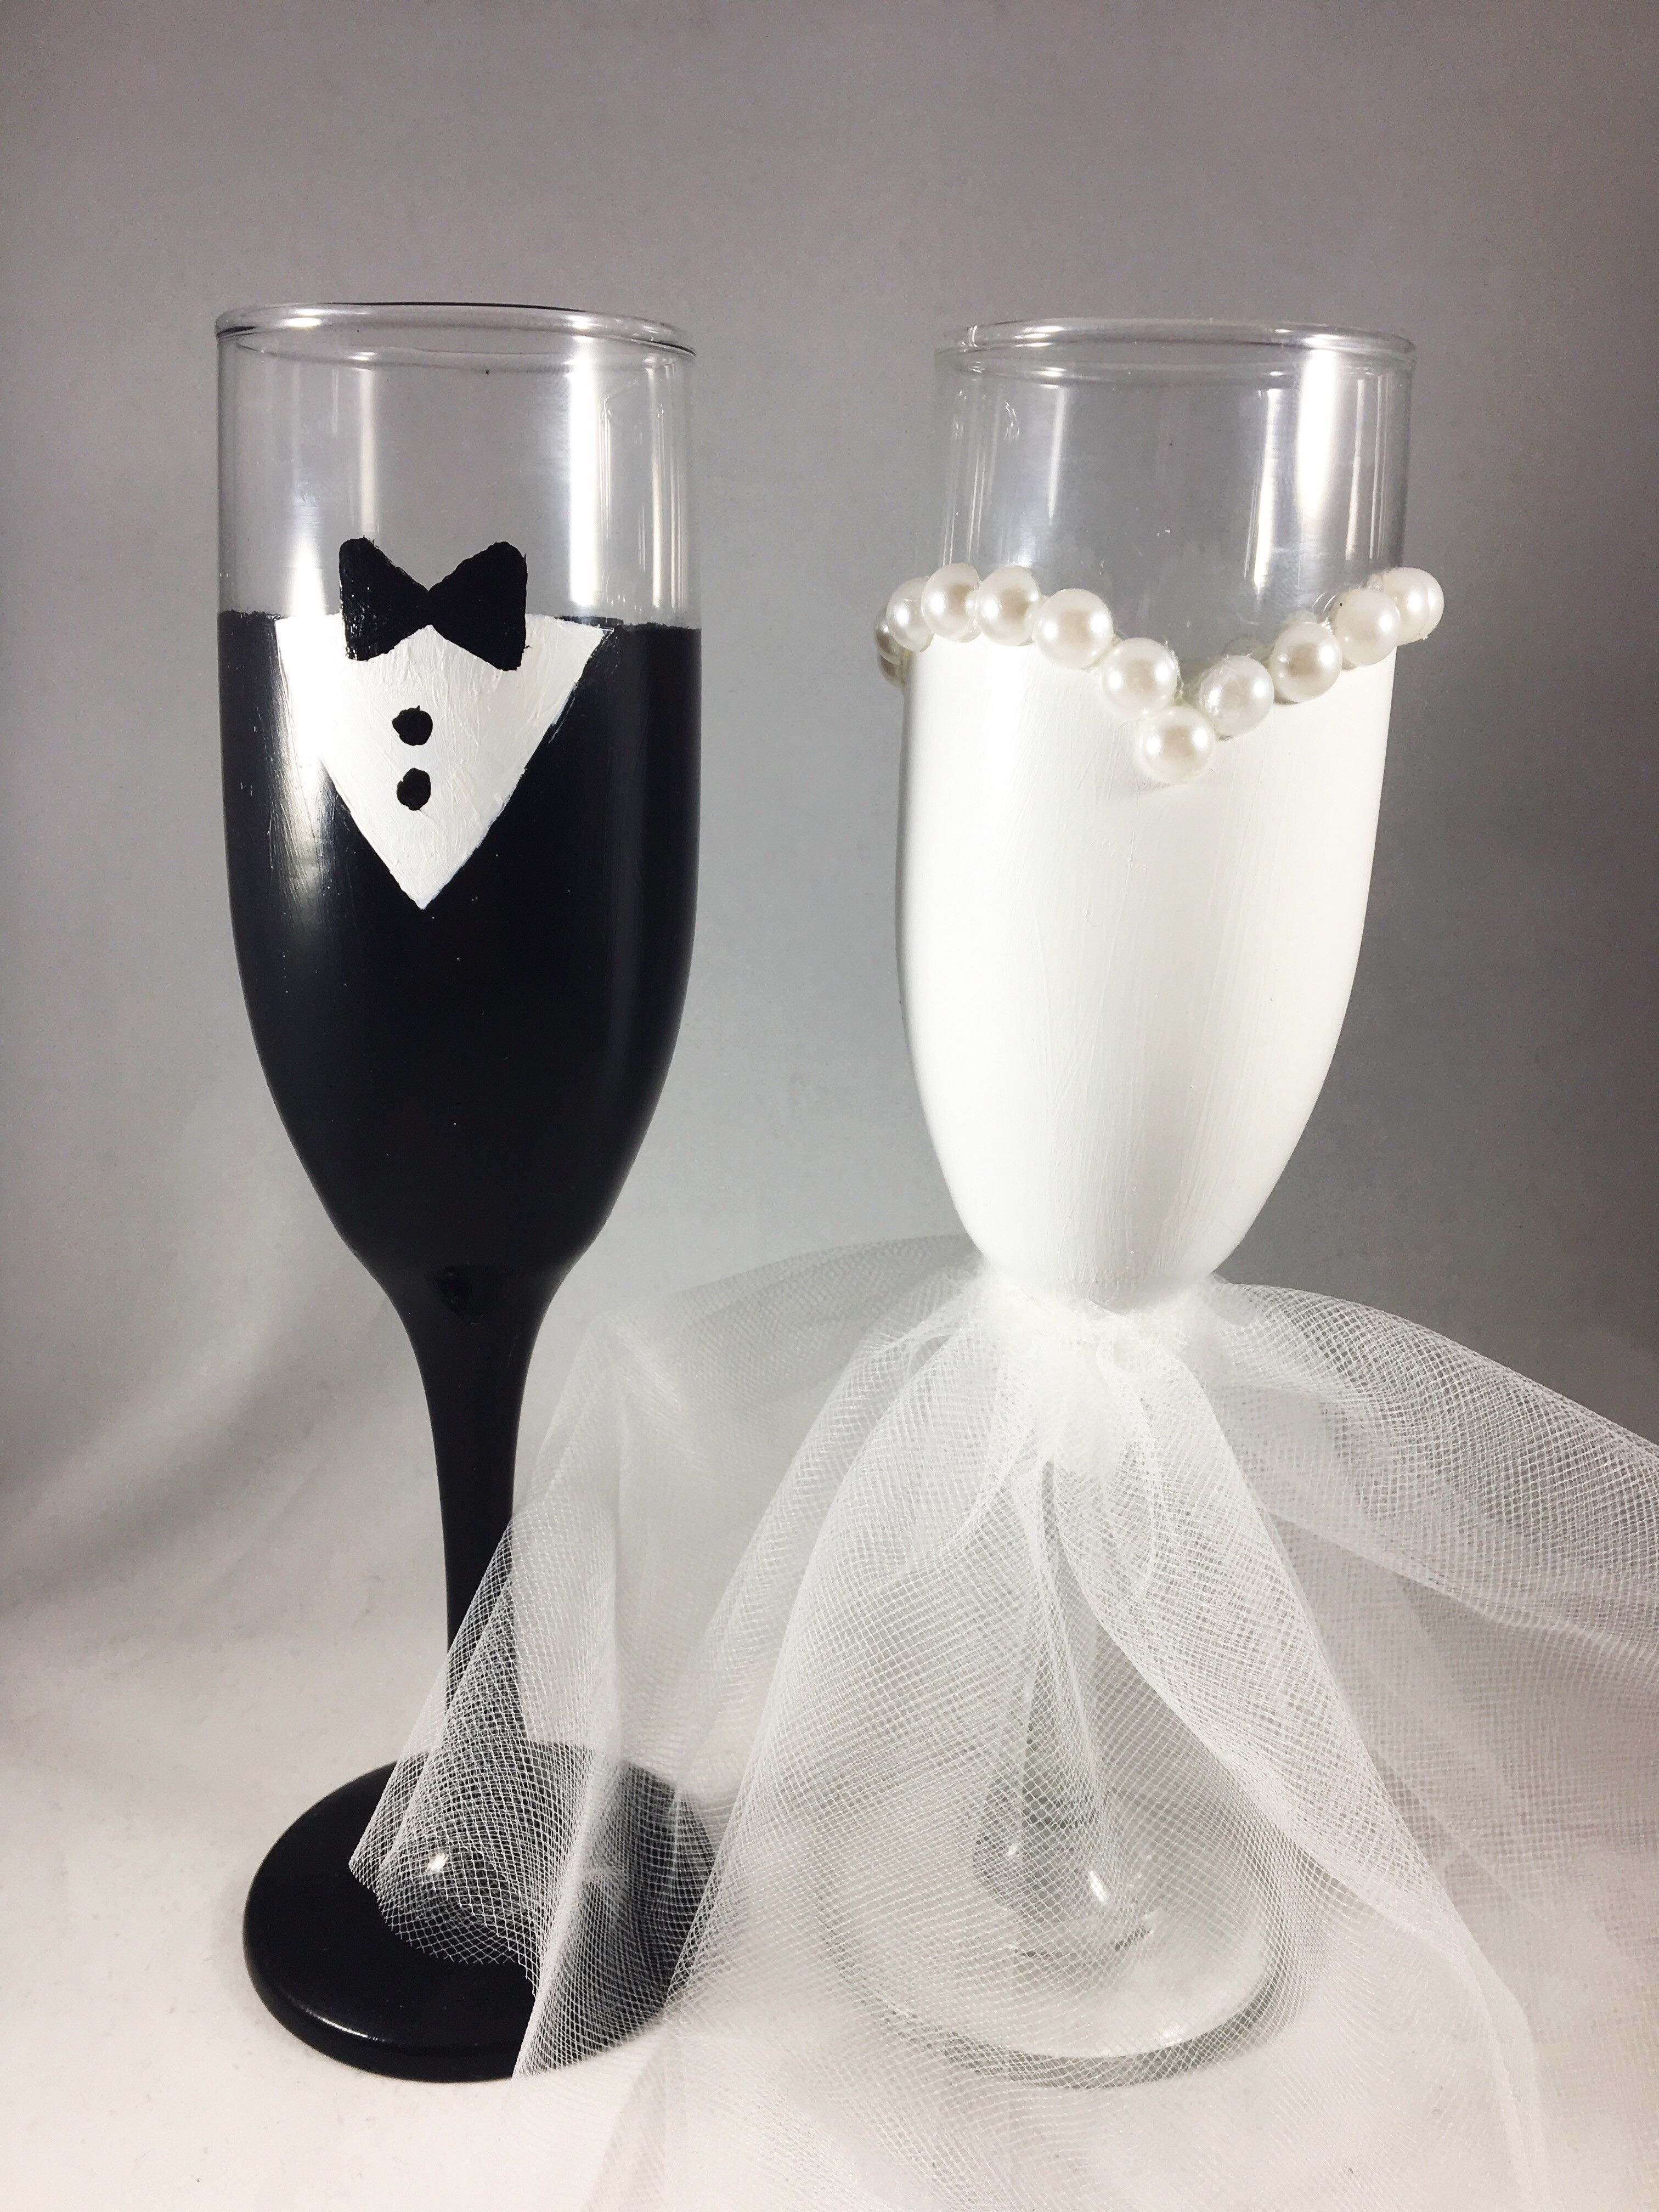 Diy Wedding Champagne Glasses Ideas Bride And Groom Glasses Wedding Bride Groom Glasses